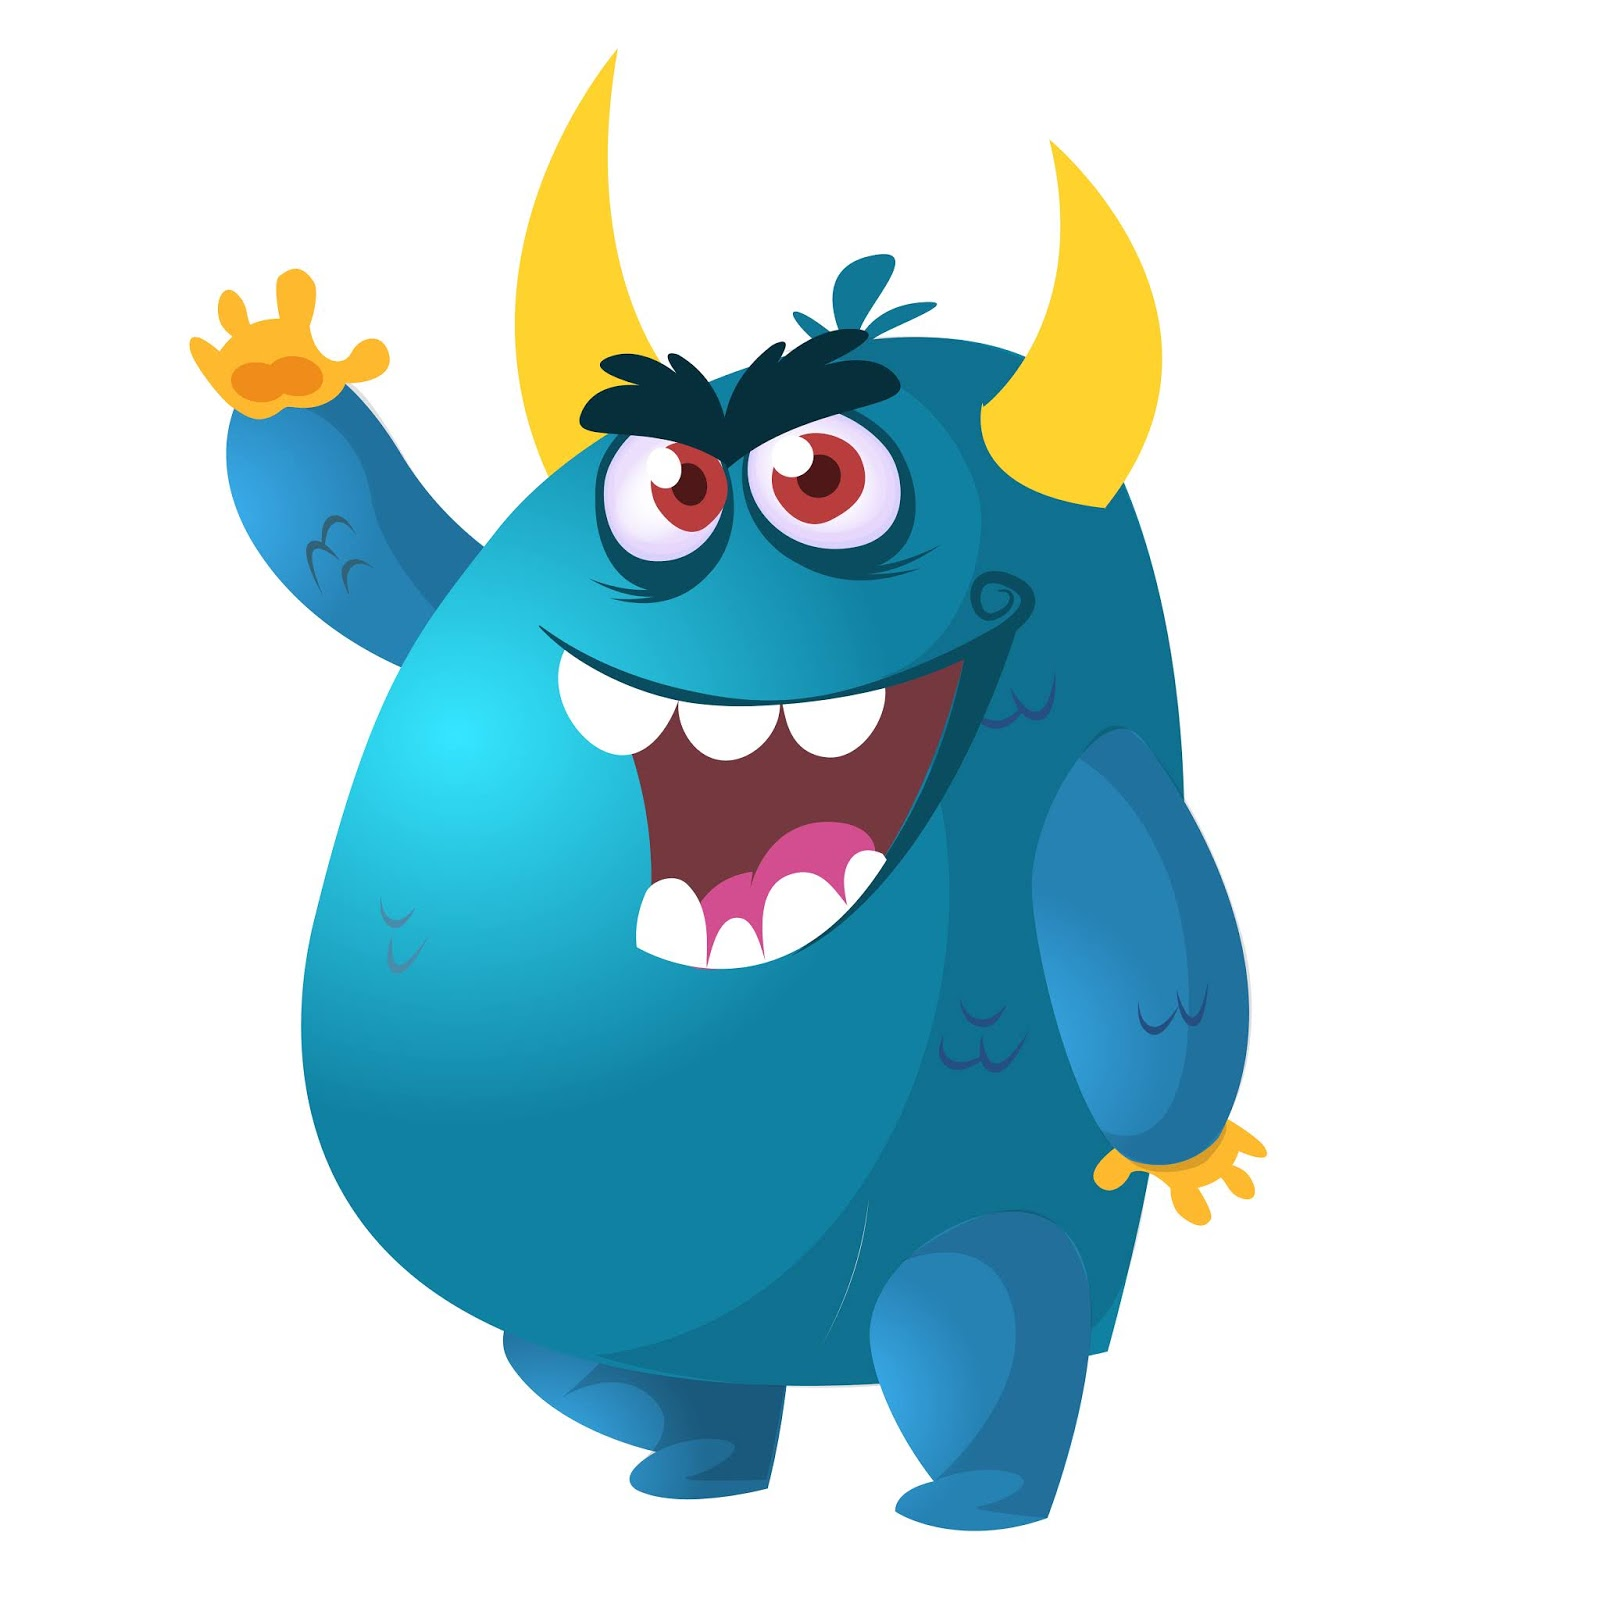 Angry Cartoon Monster Vector Illustration Free Download Vector CDR, AI, EPS and PNG Formats